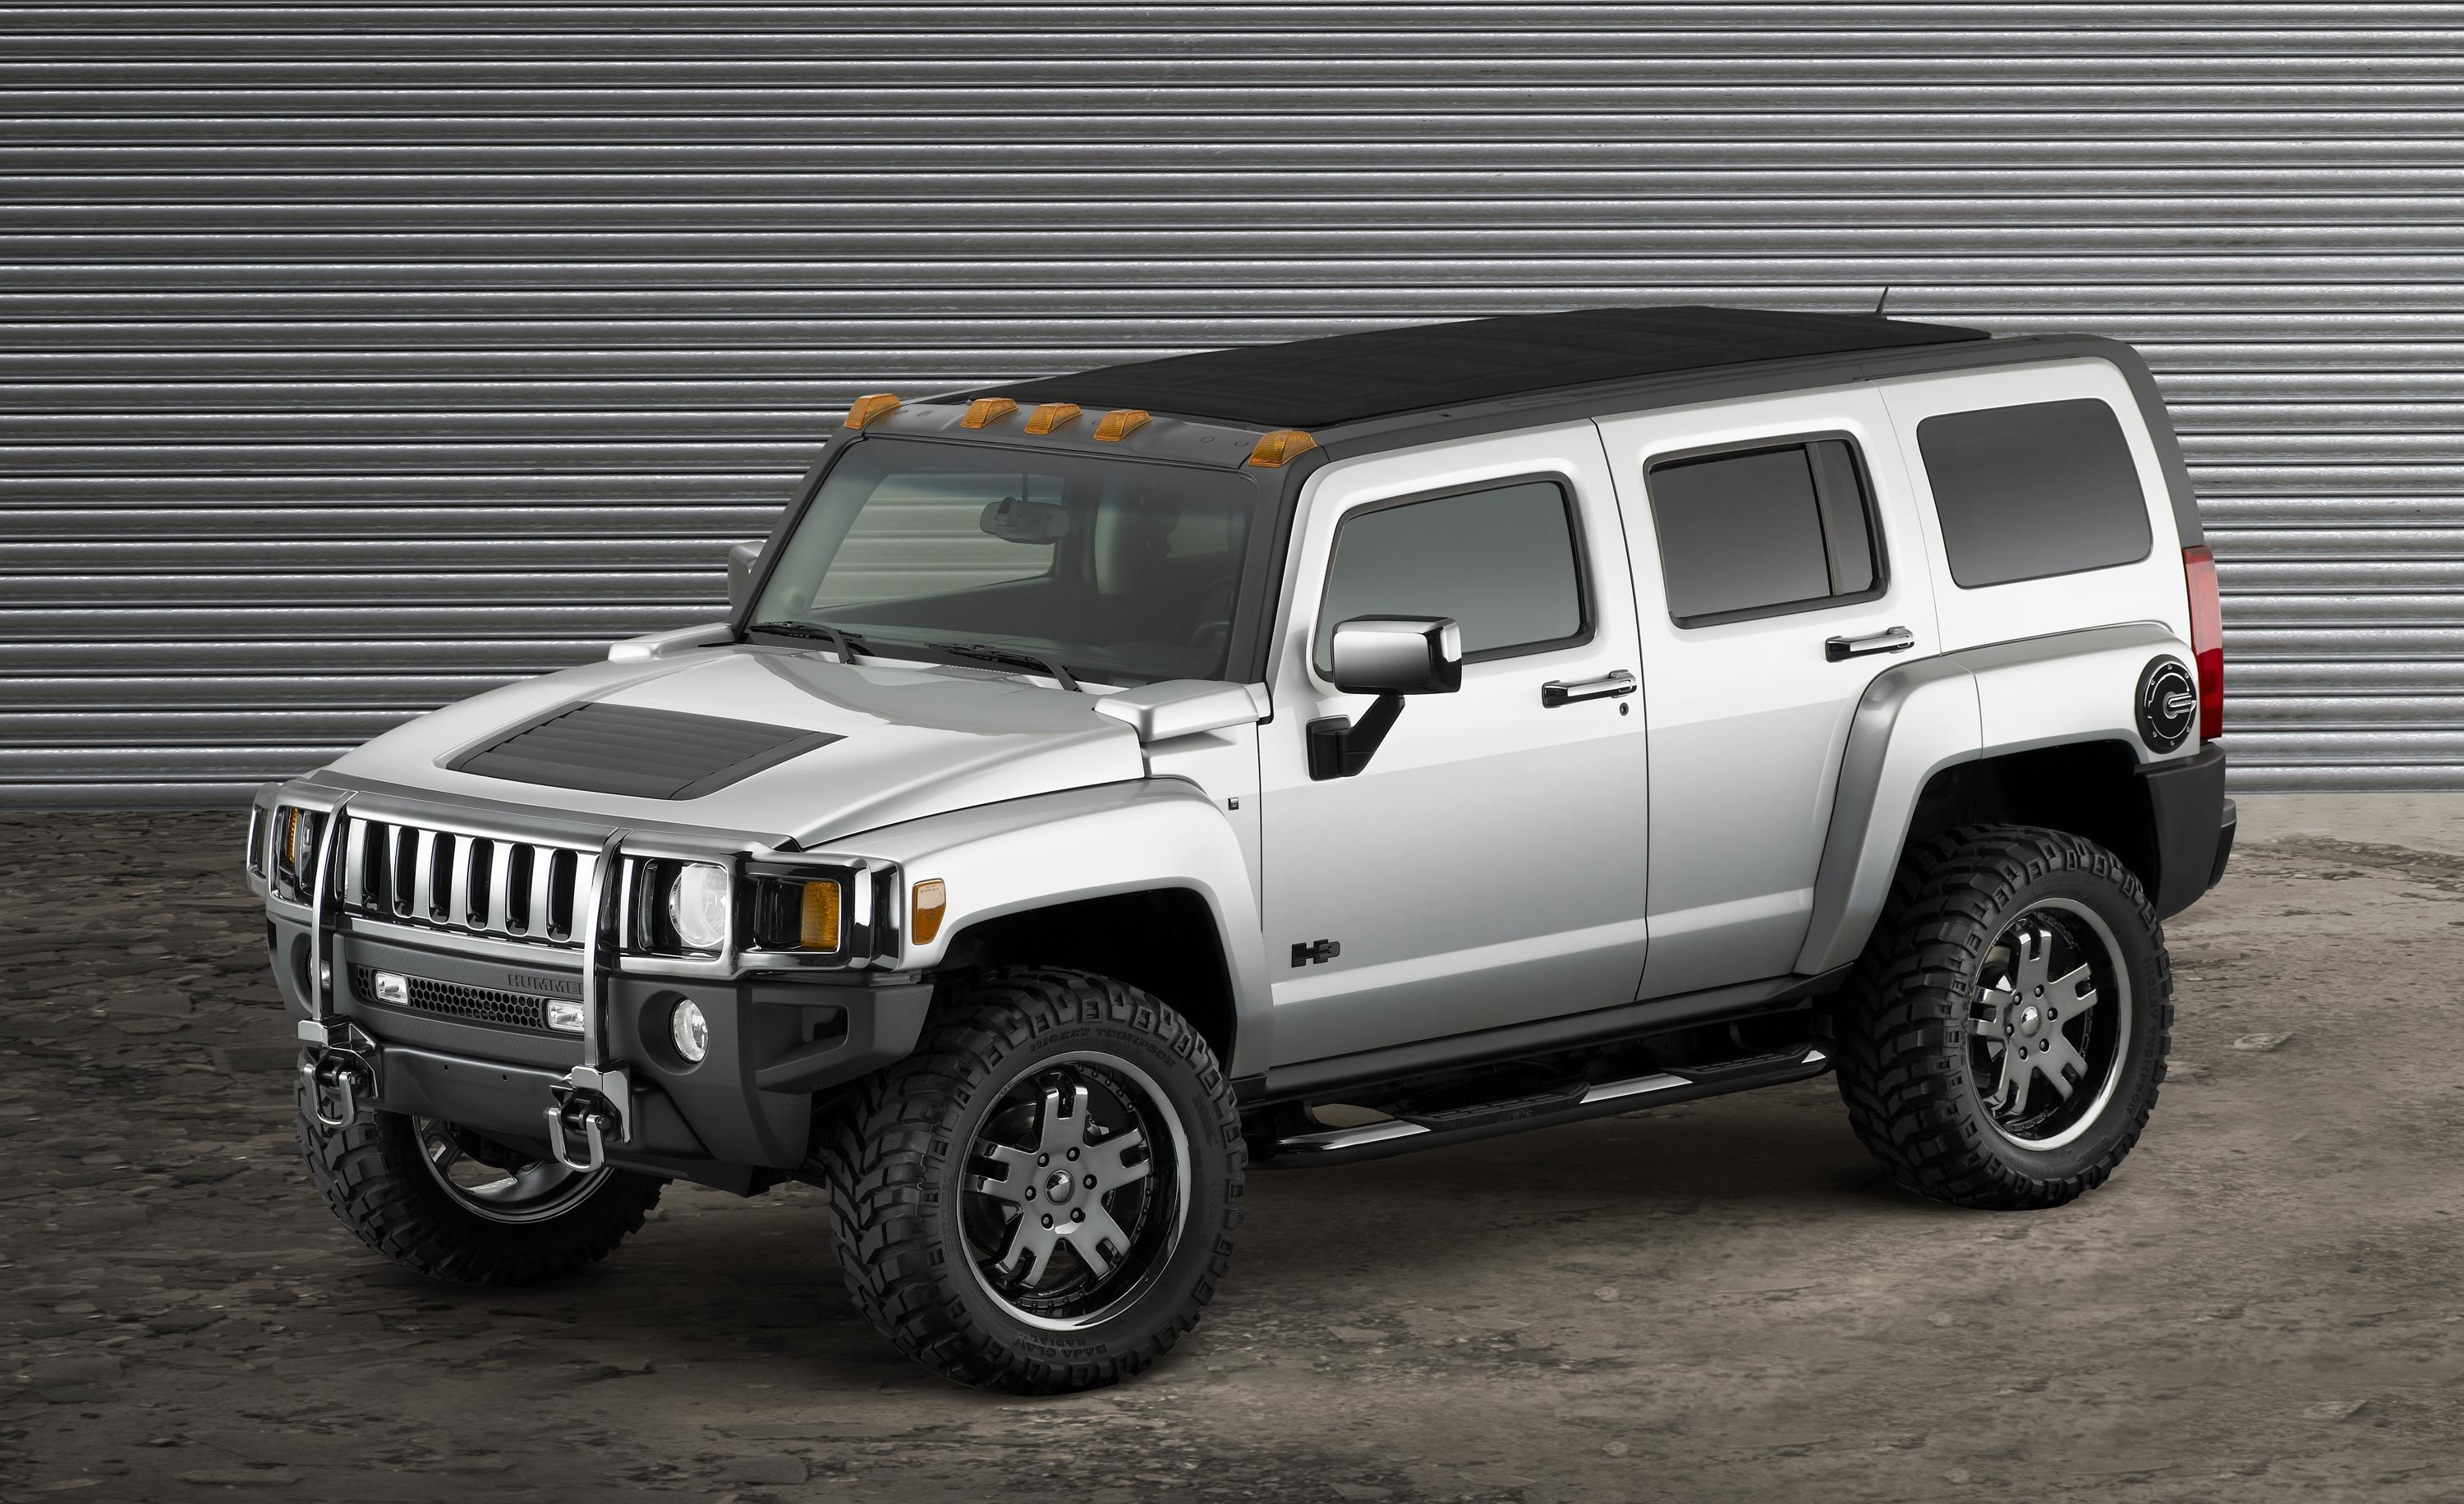 2007 Hummer H3 Open Top Top Speed